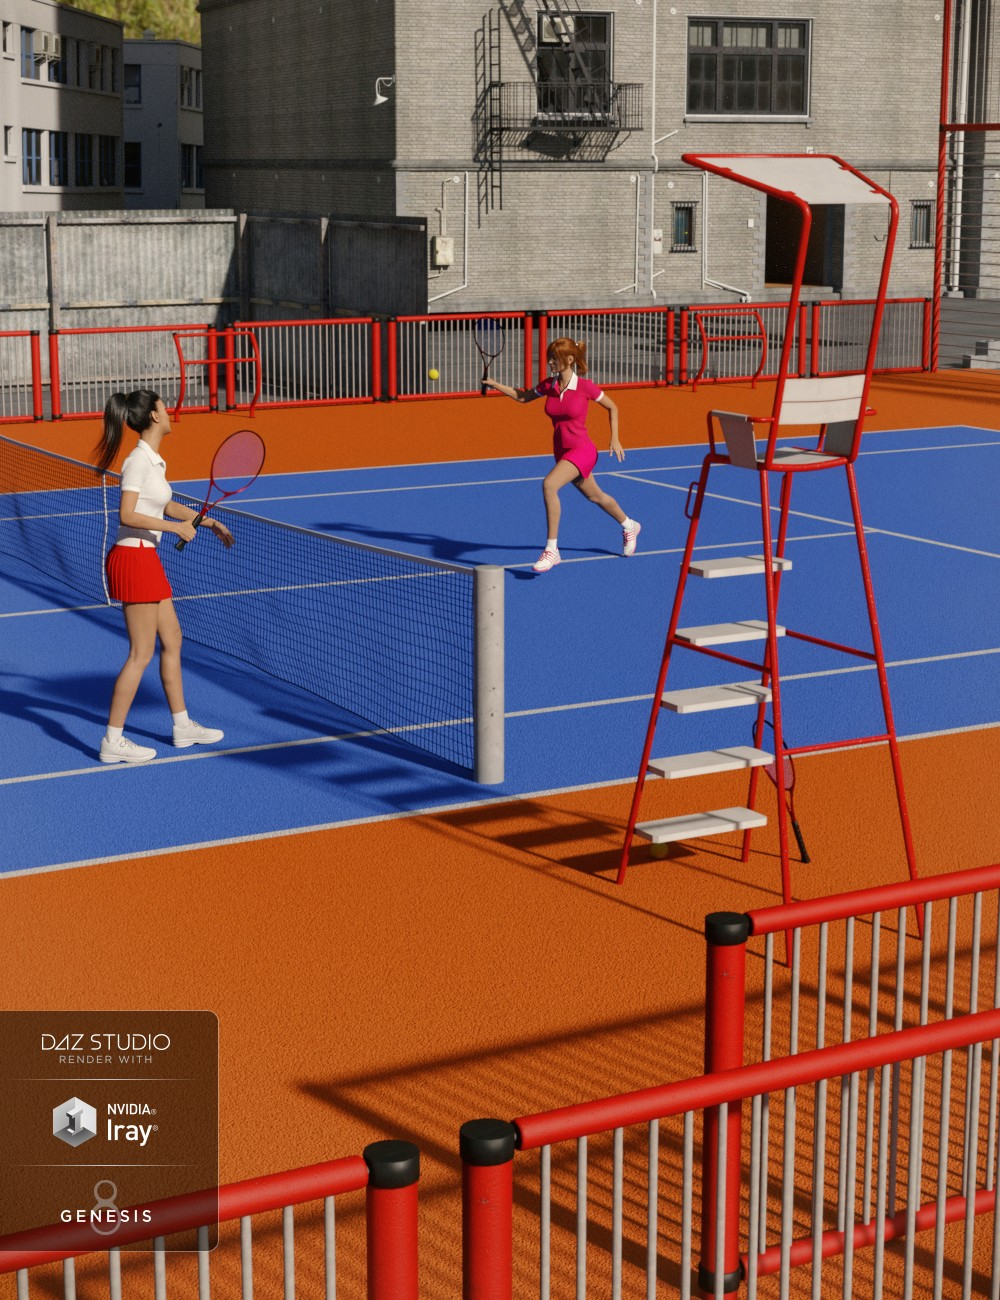 Download DAZ Studio 3 for FREE!: DAZ 3D - Urban Playground